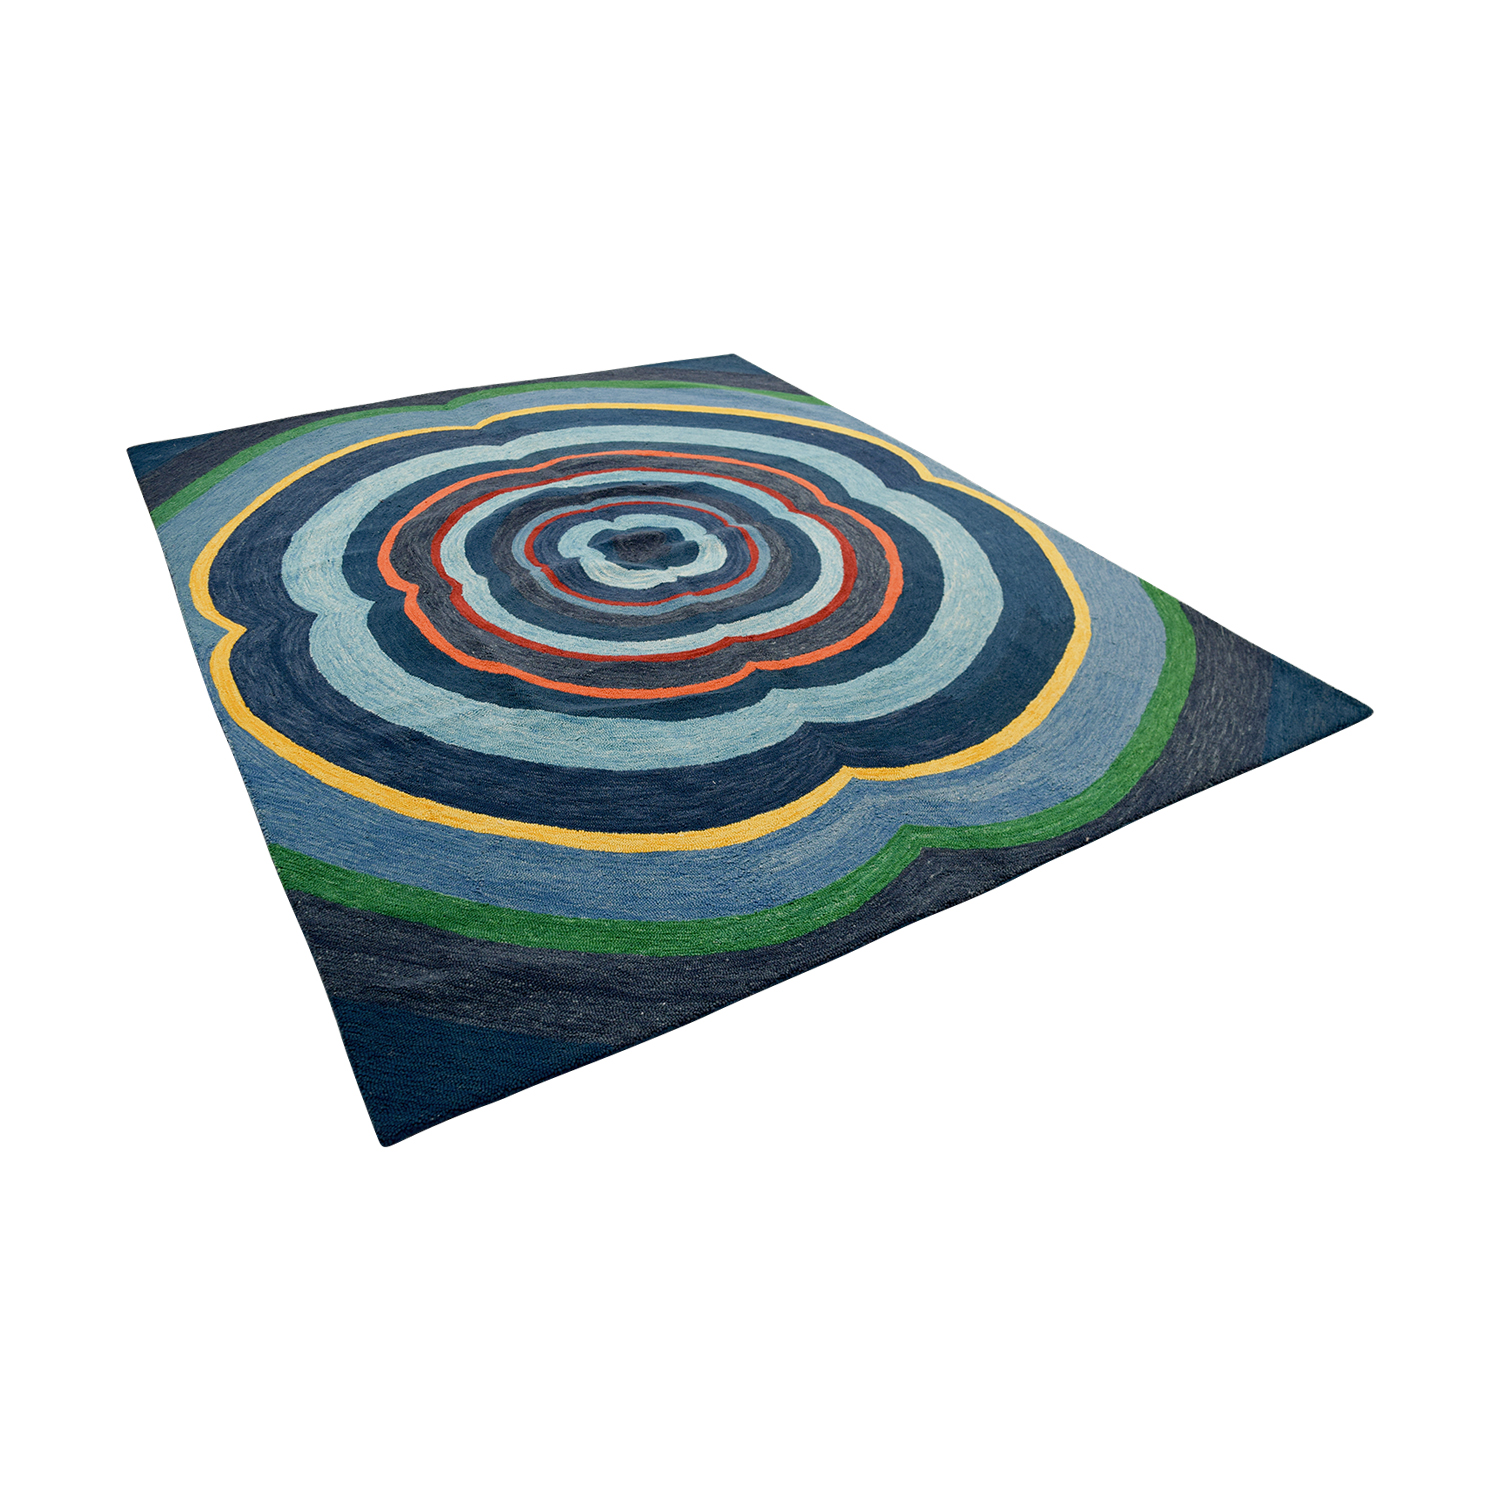 Obeetee Obeetee Annapolis Blue Hand Hooked Rug second hand